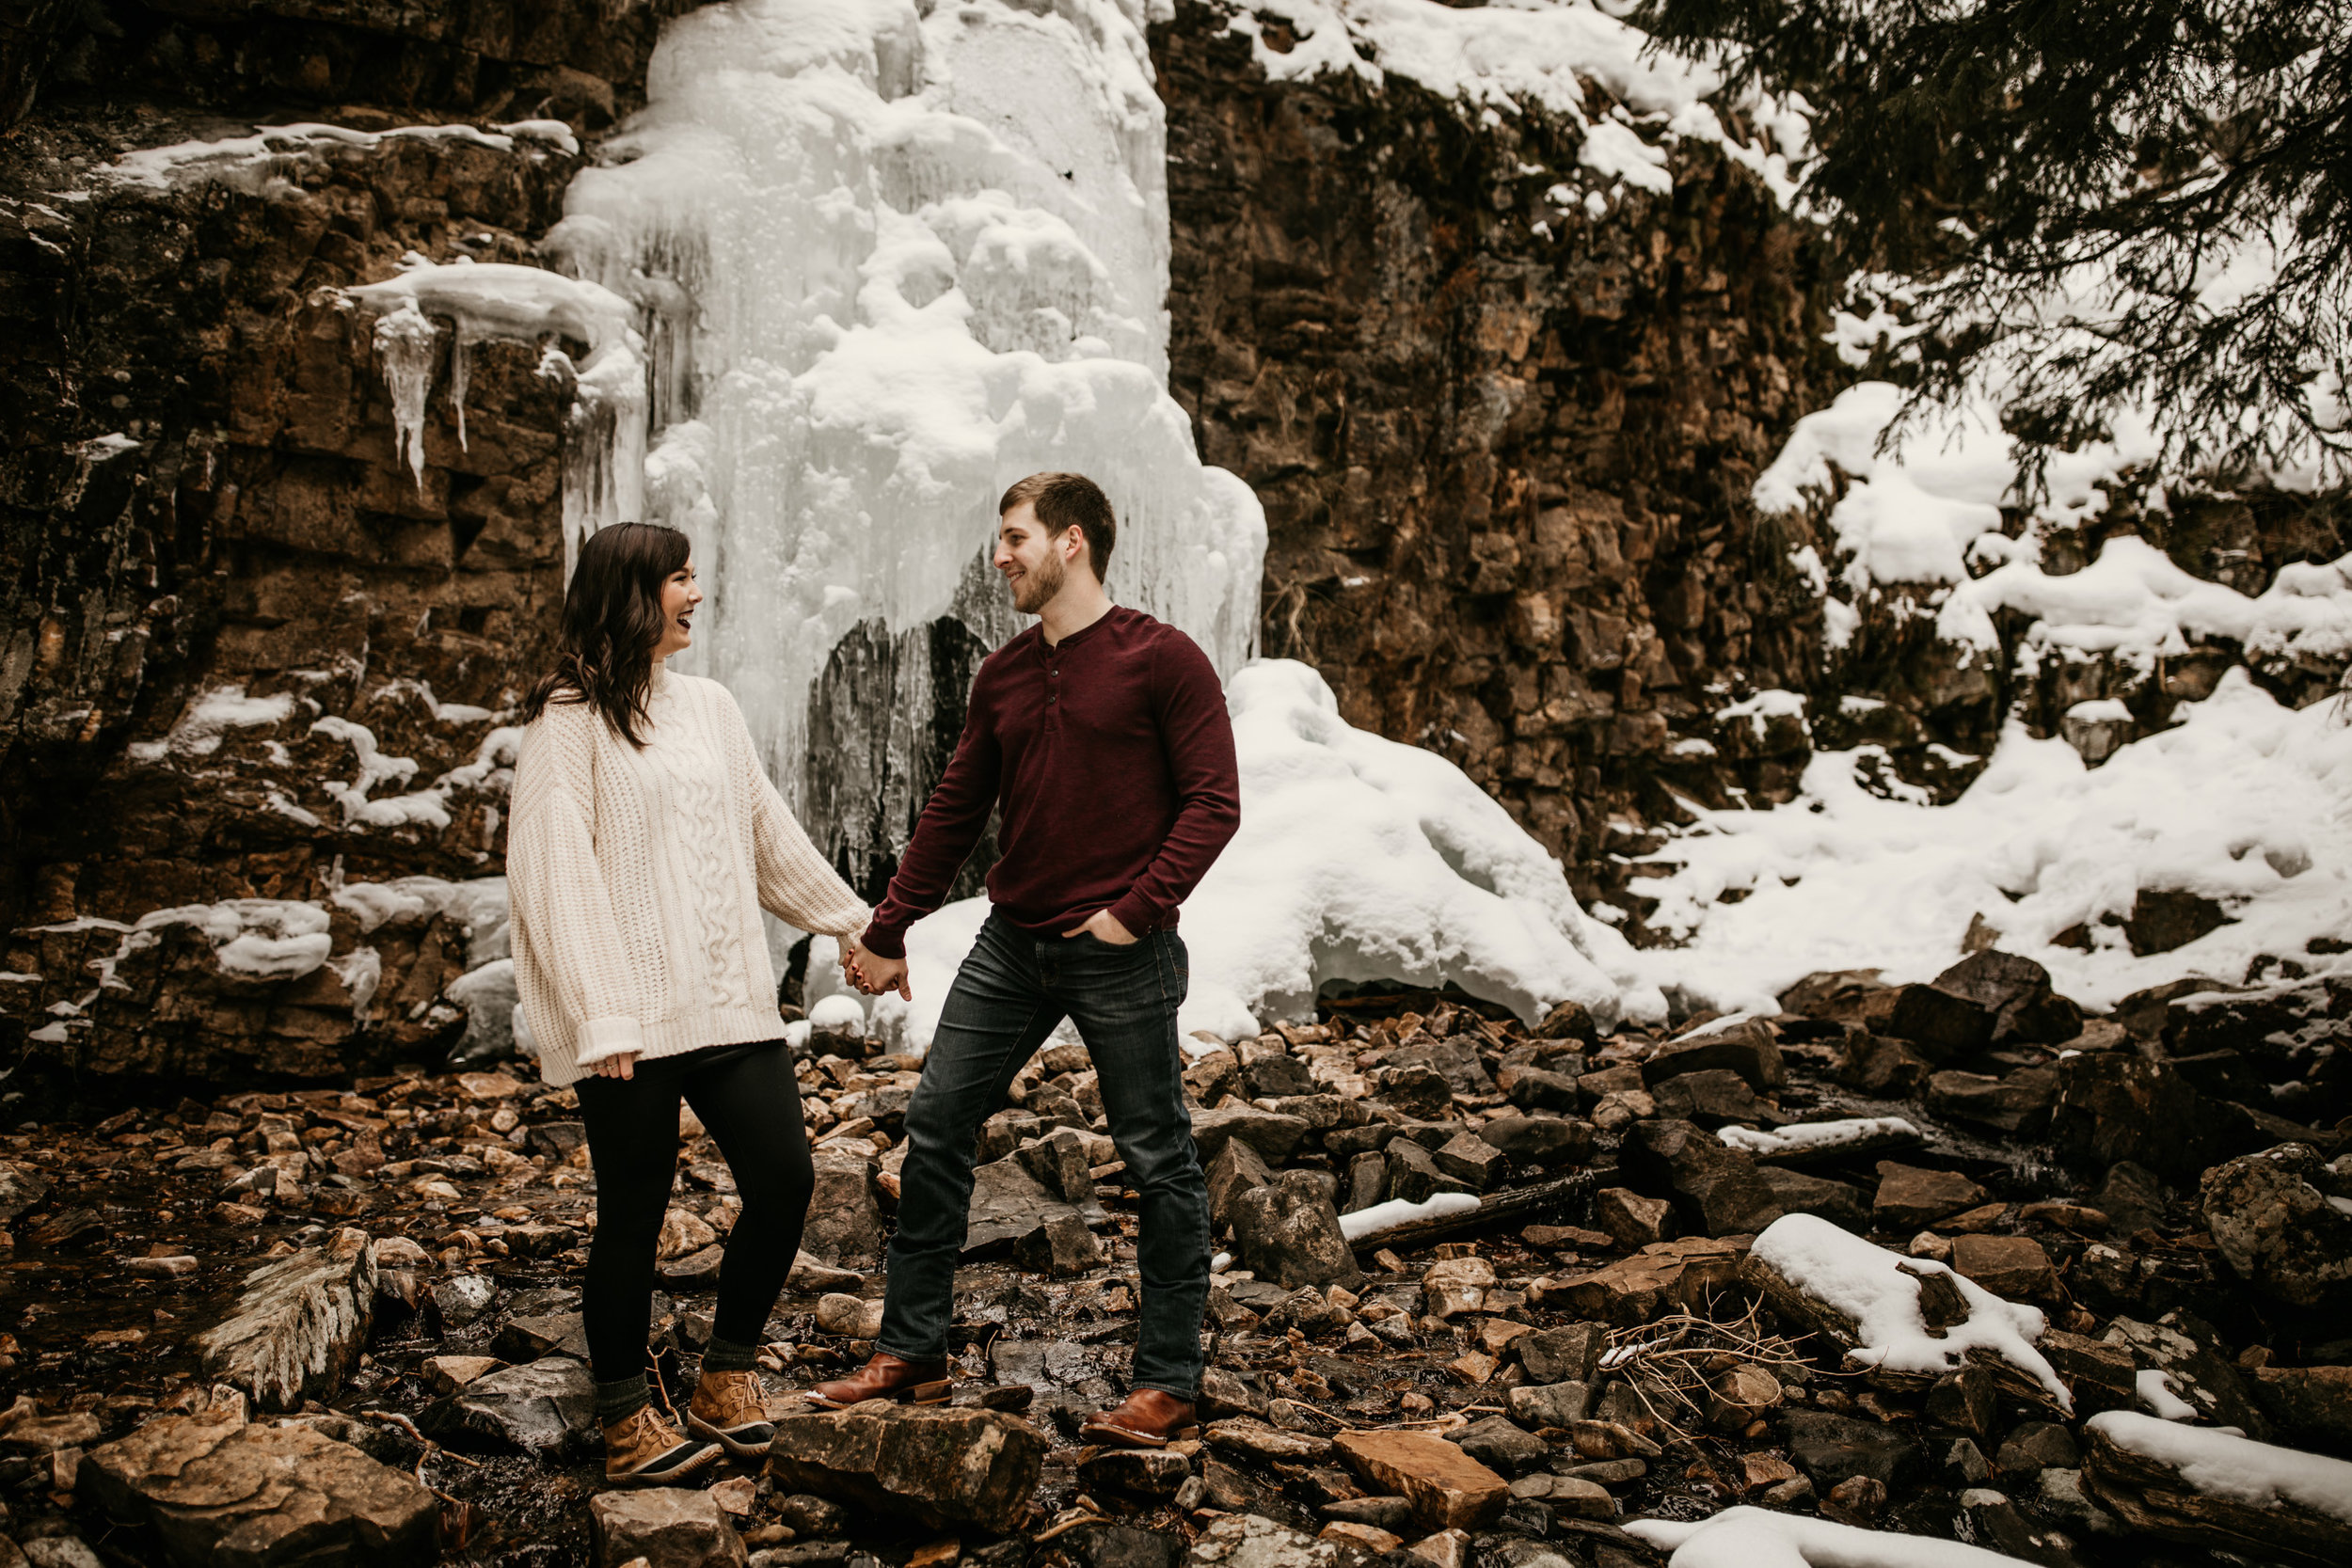 Molly-Trenton_Montana-Waterfall-Engagment-Session-3.jpg